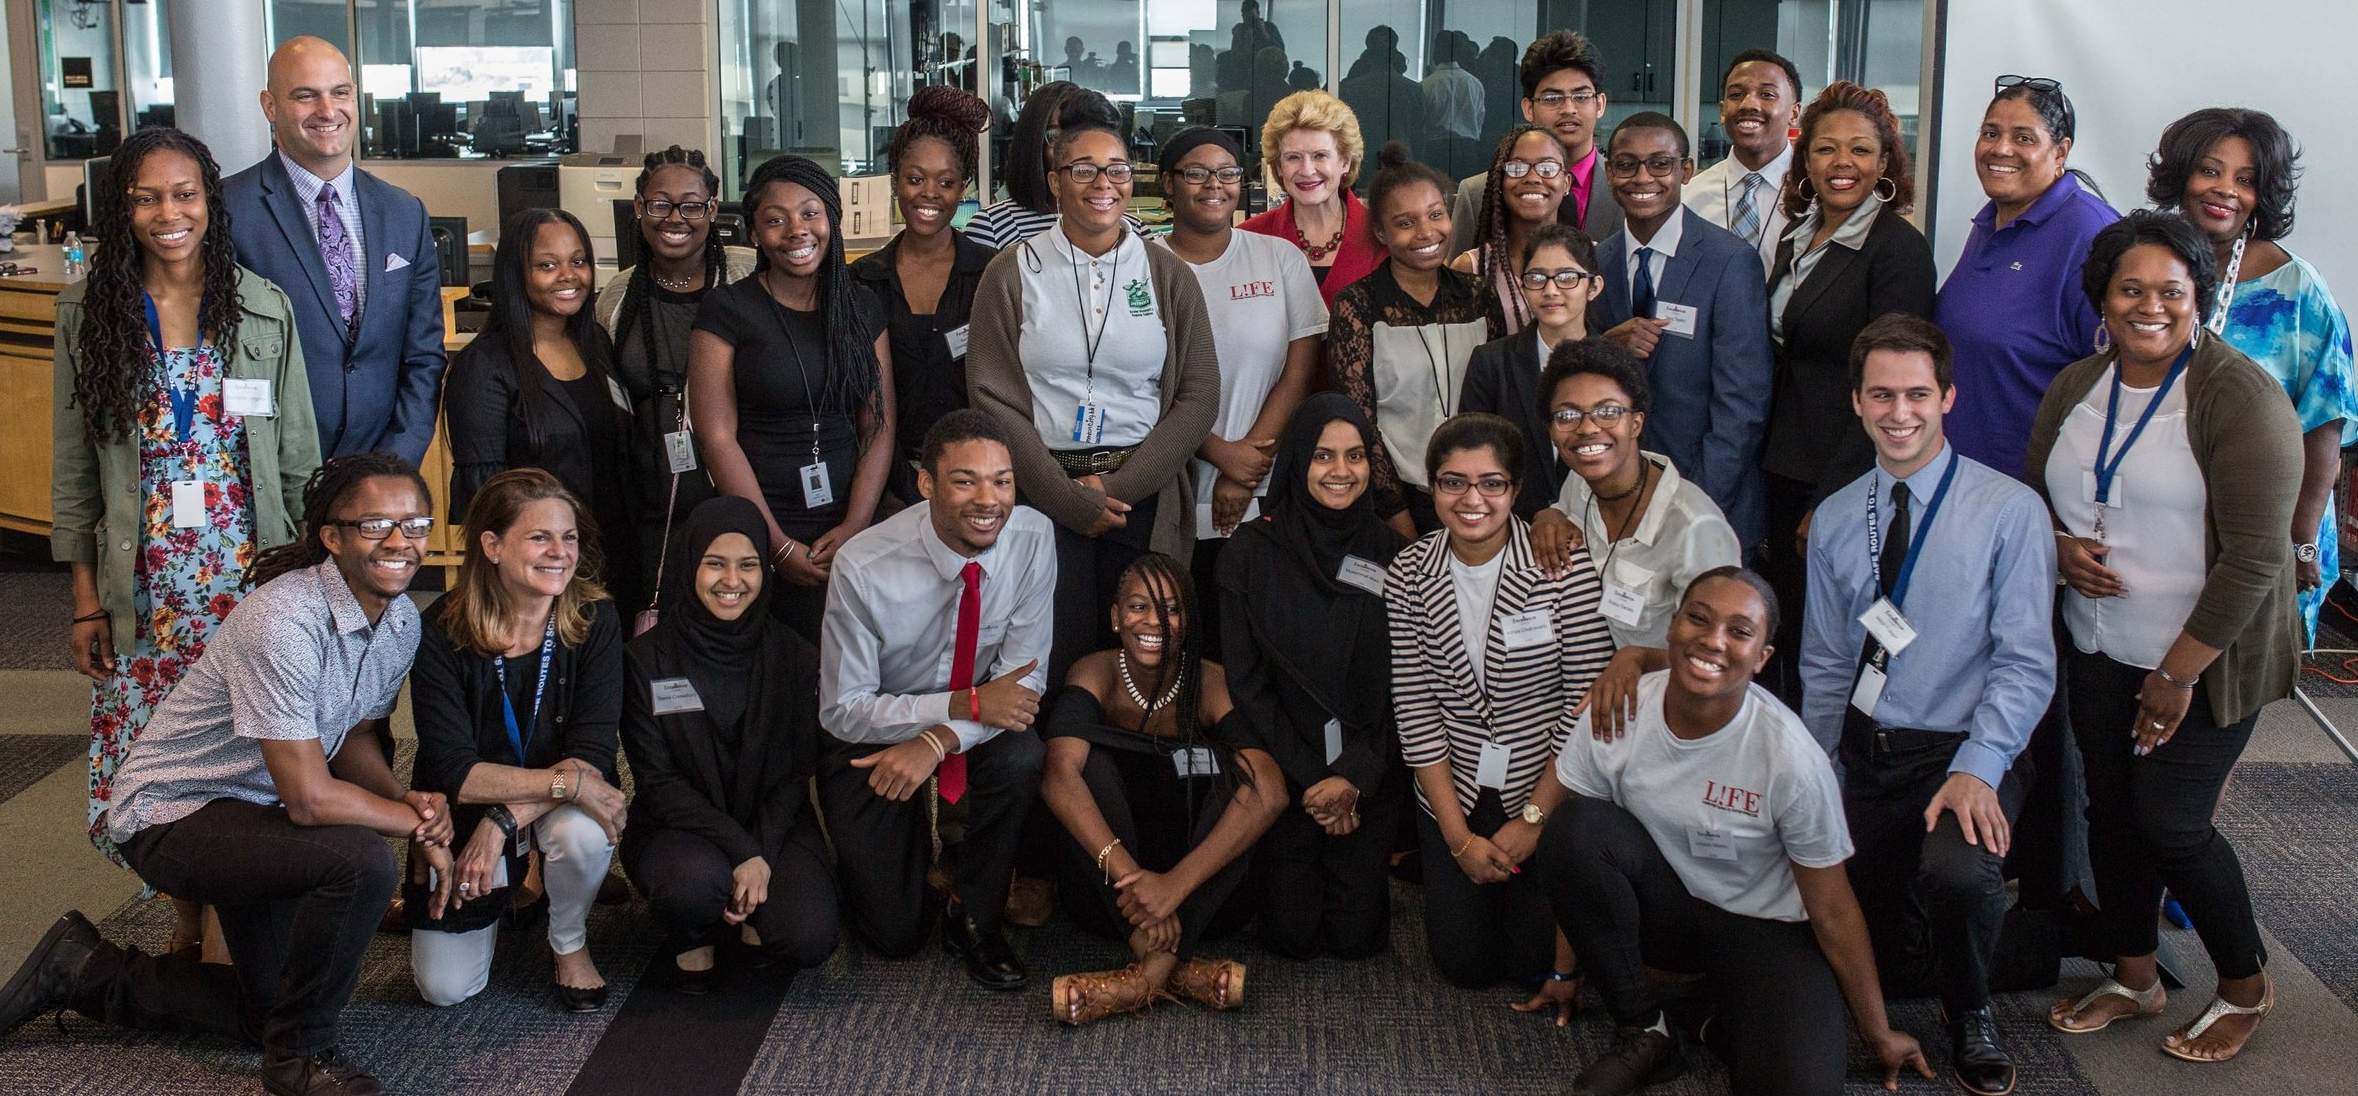 Excellence Corps 2018 with US Senator Debbie Stabenow